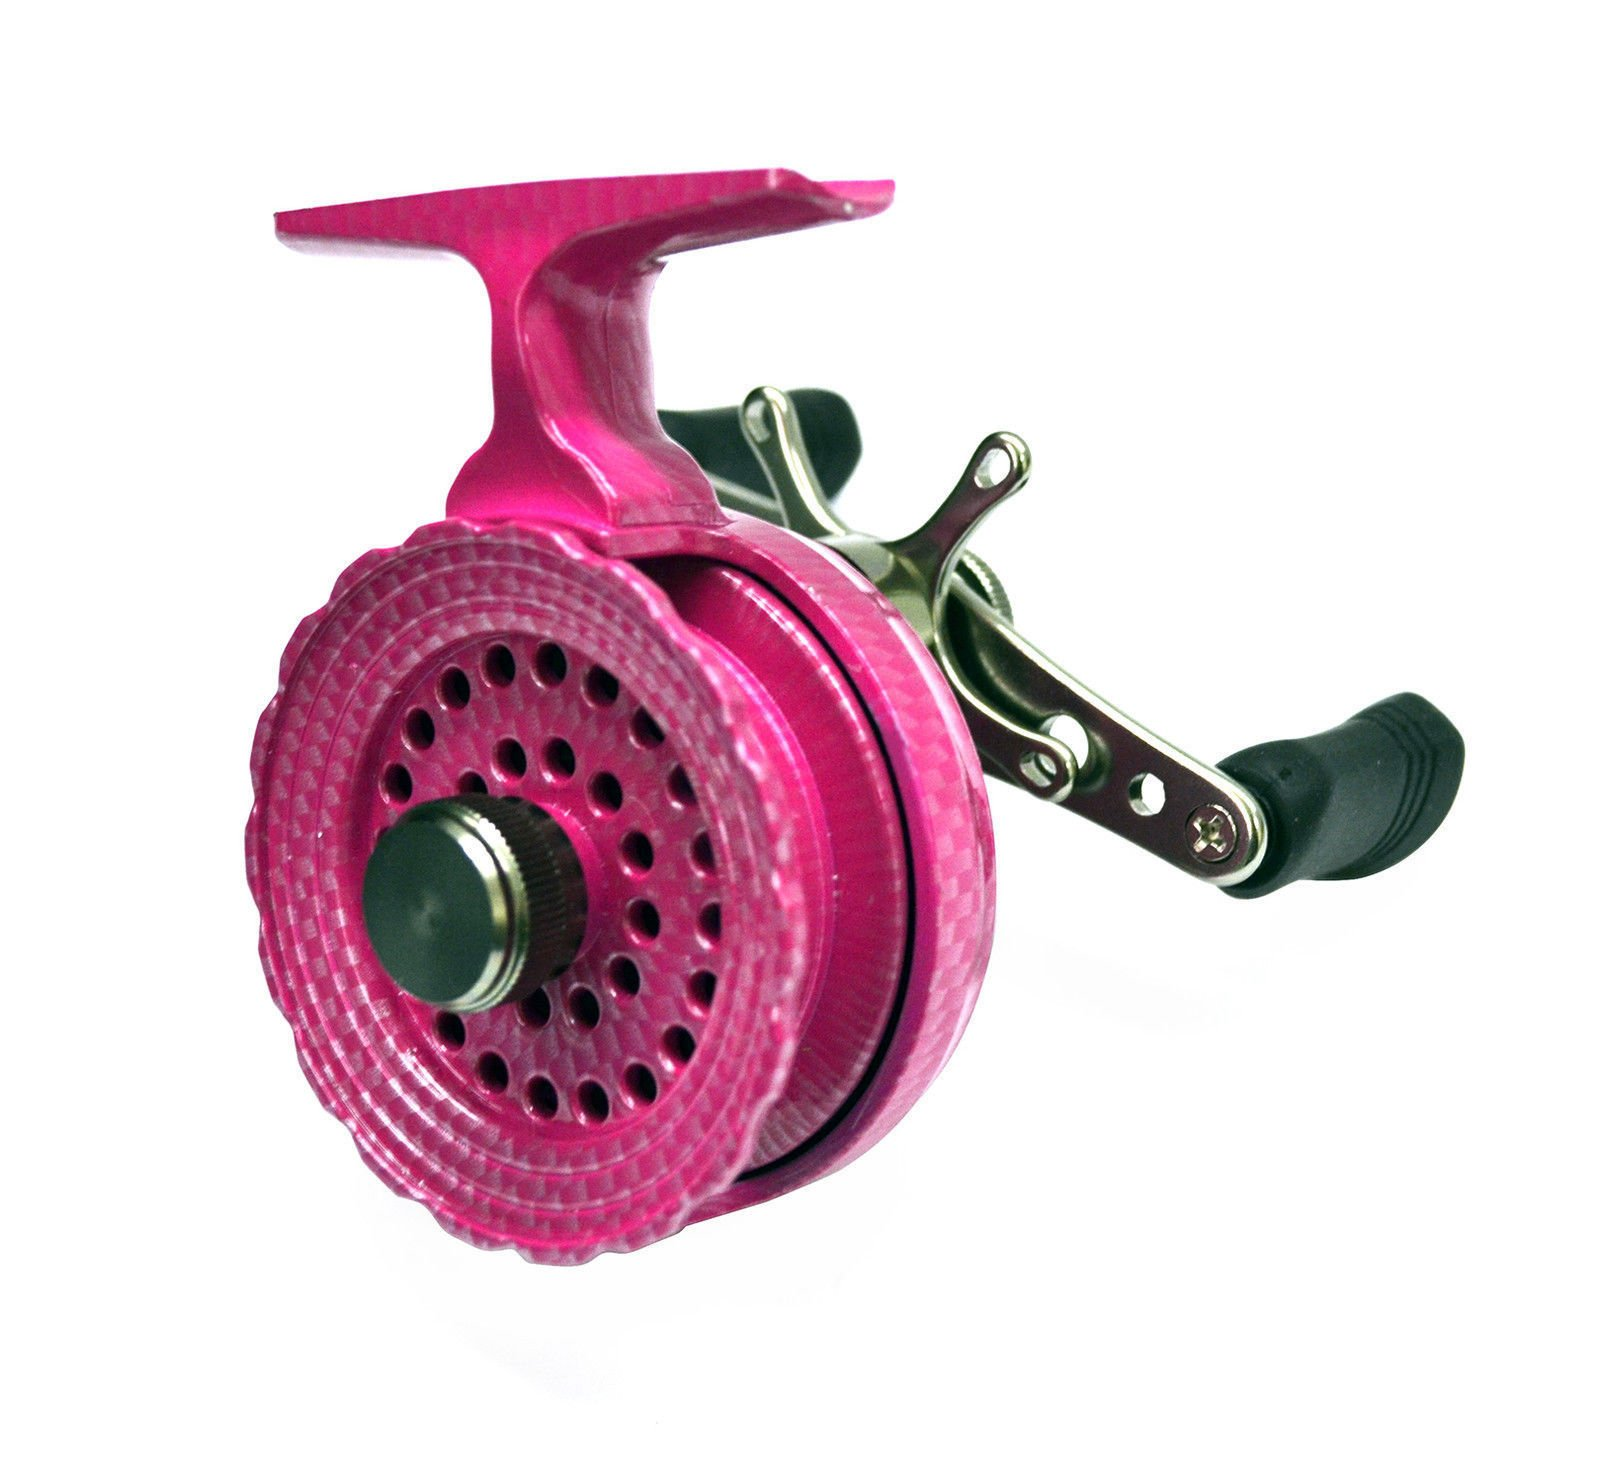 EAGLE CLAW INLINE ICE FISHING REEL (PINK) MPN: ECILIRP BLUEGILL WALLEYE PERCH